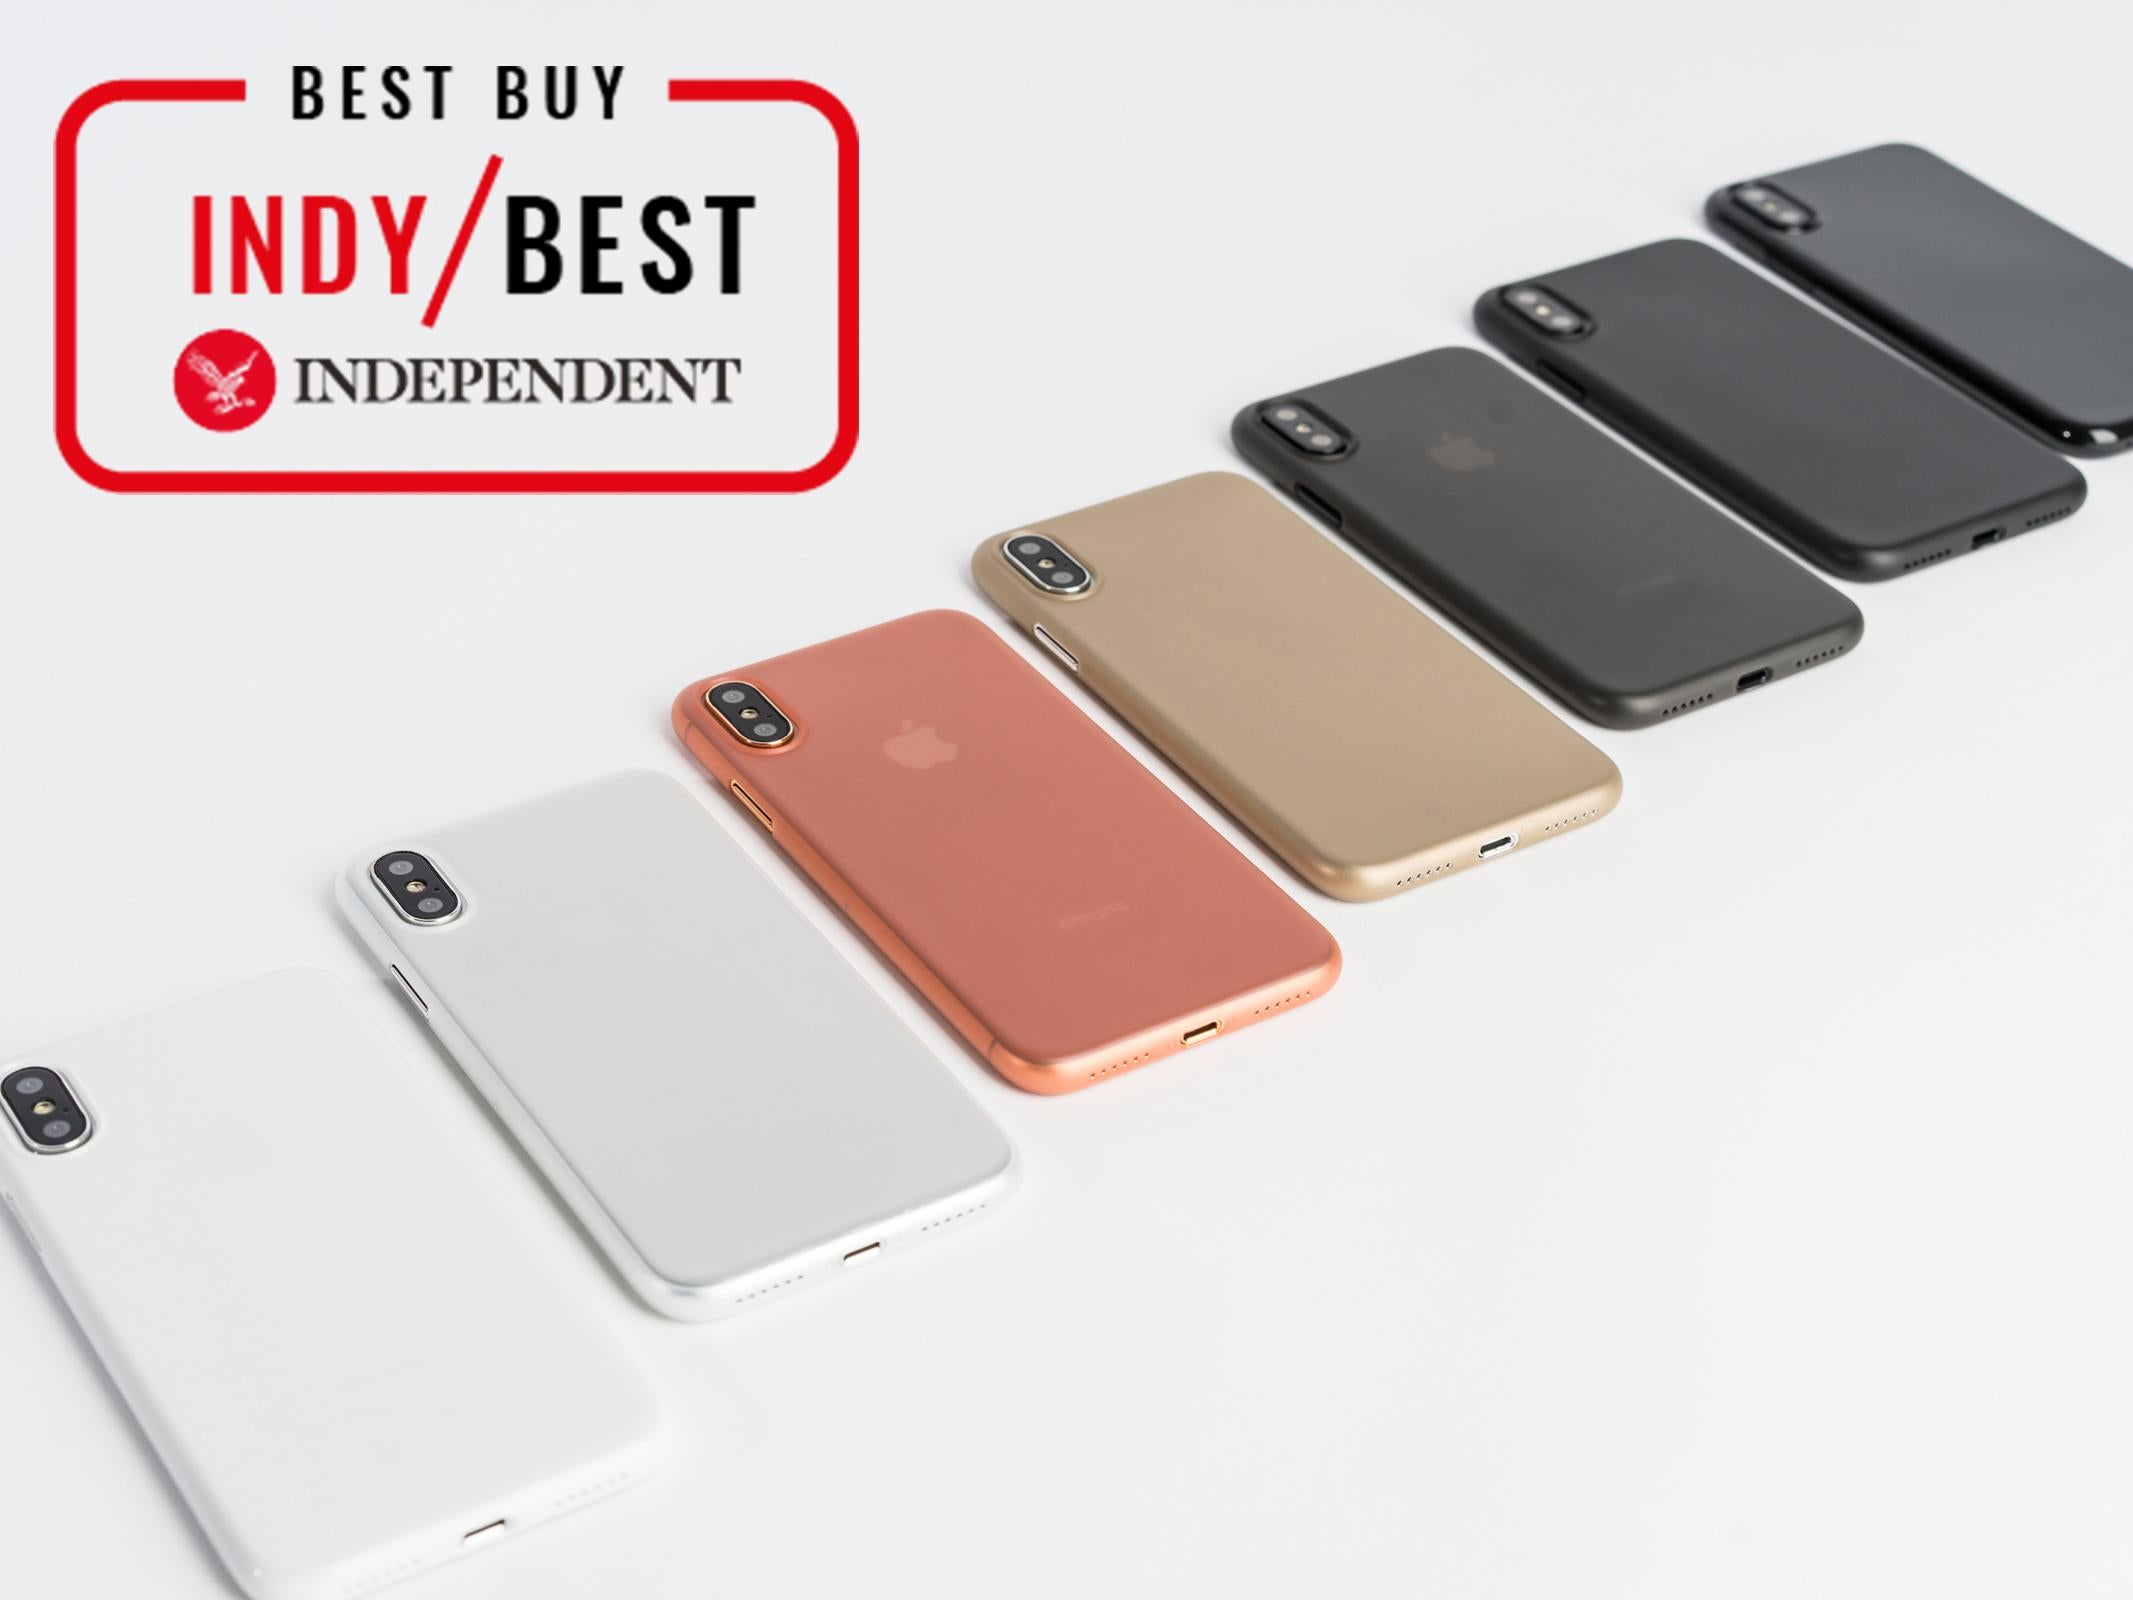 10 Best Iphone Xs And Xs Max Cases The Independent